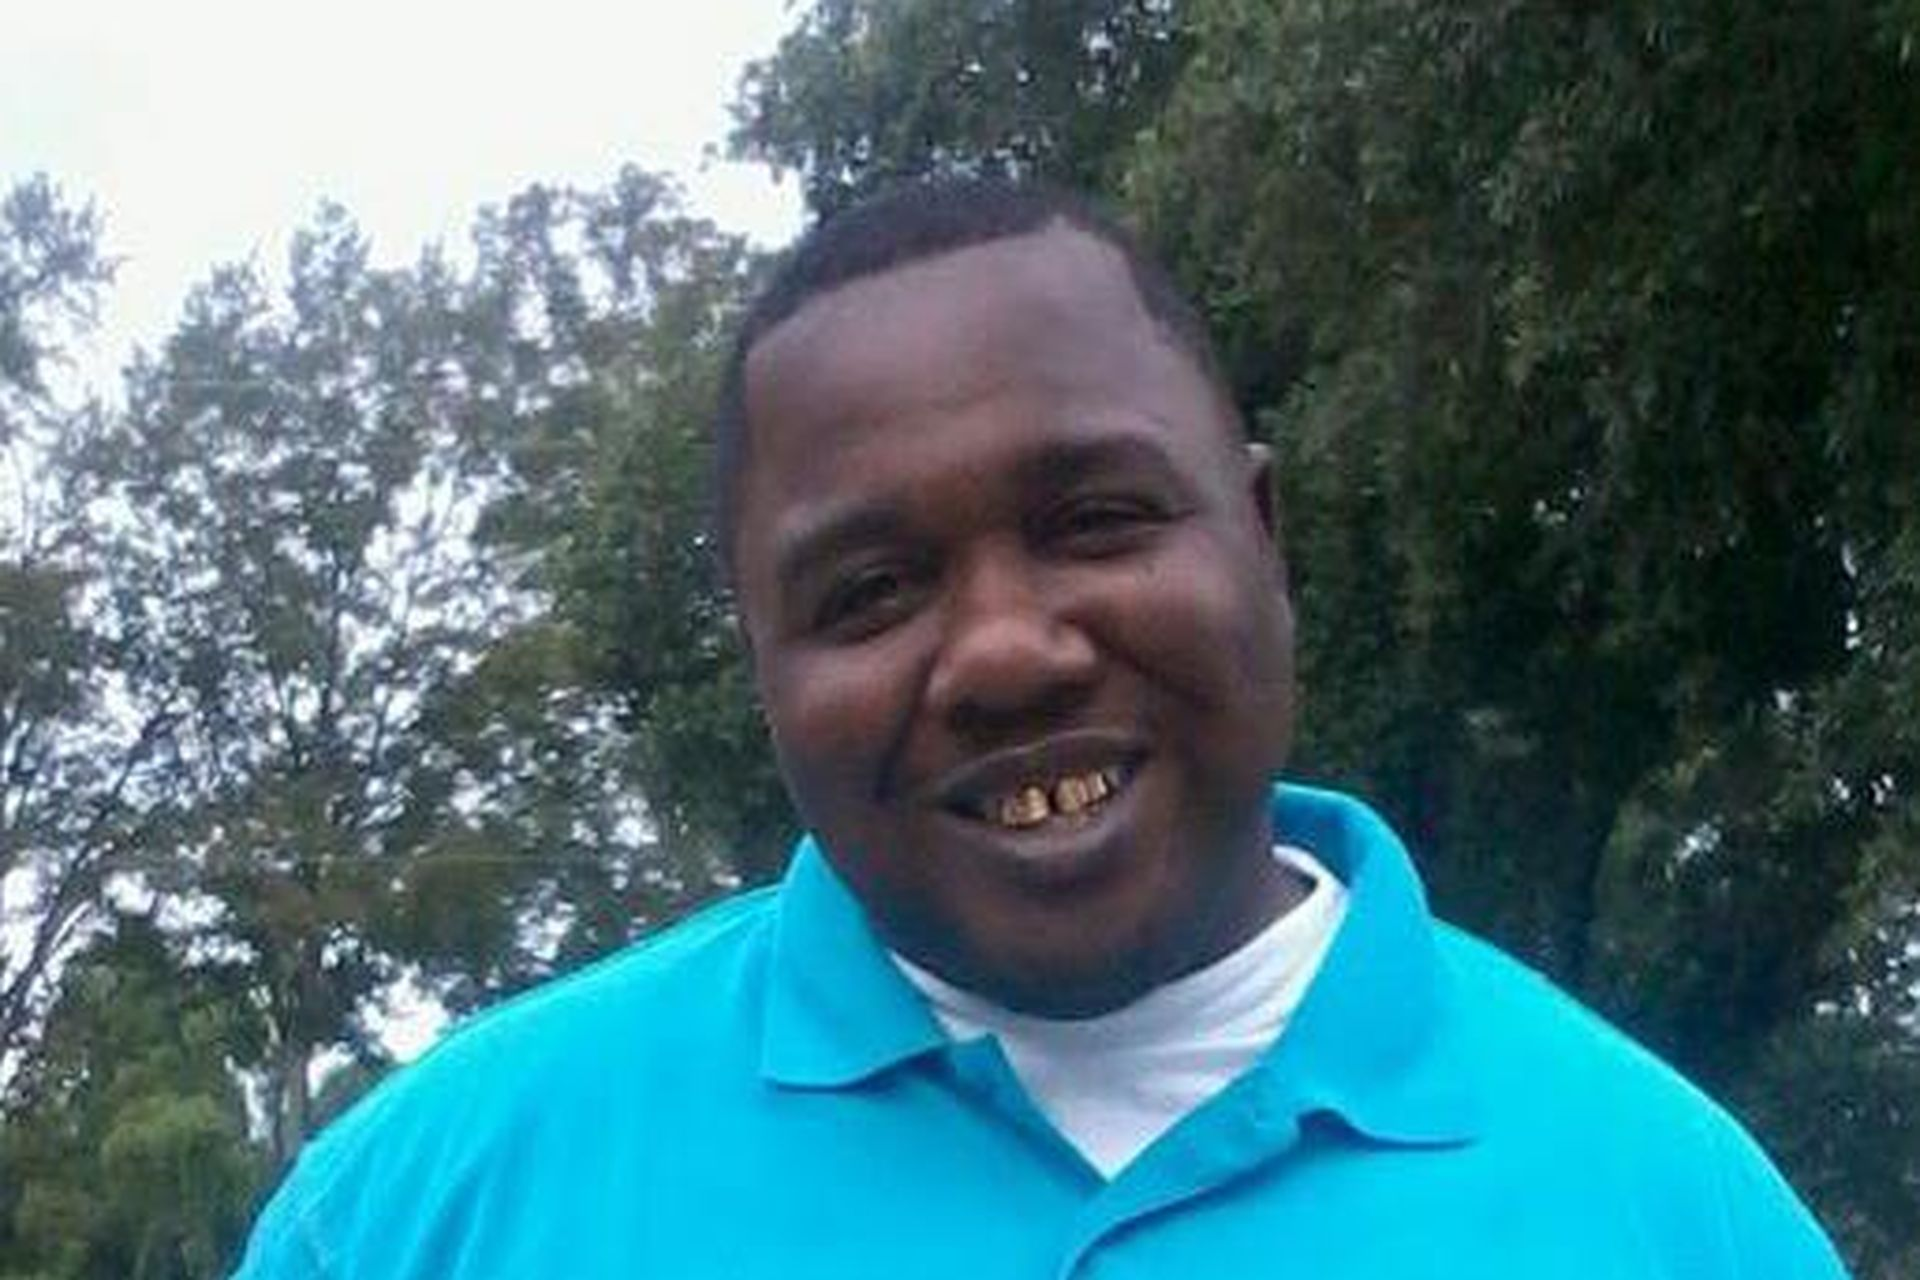 Alton Sterling, a 37-year-old black man who was shot and killed by Baton Rouge, Louisiana, police.